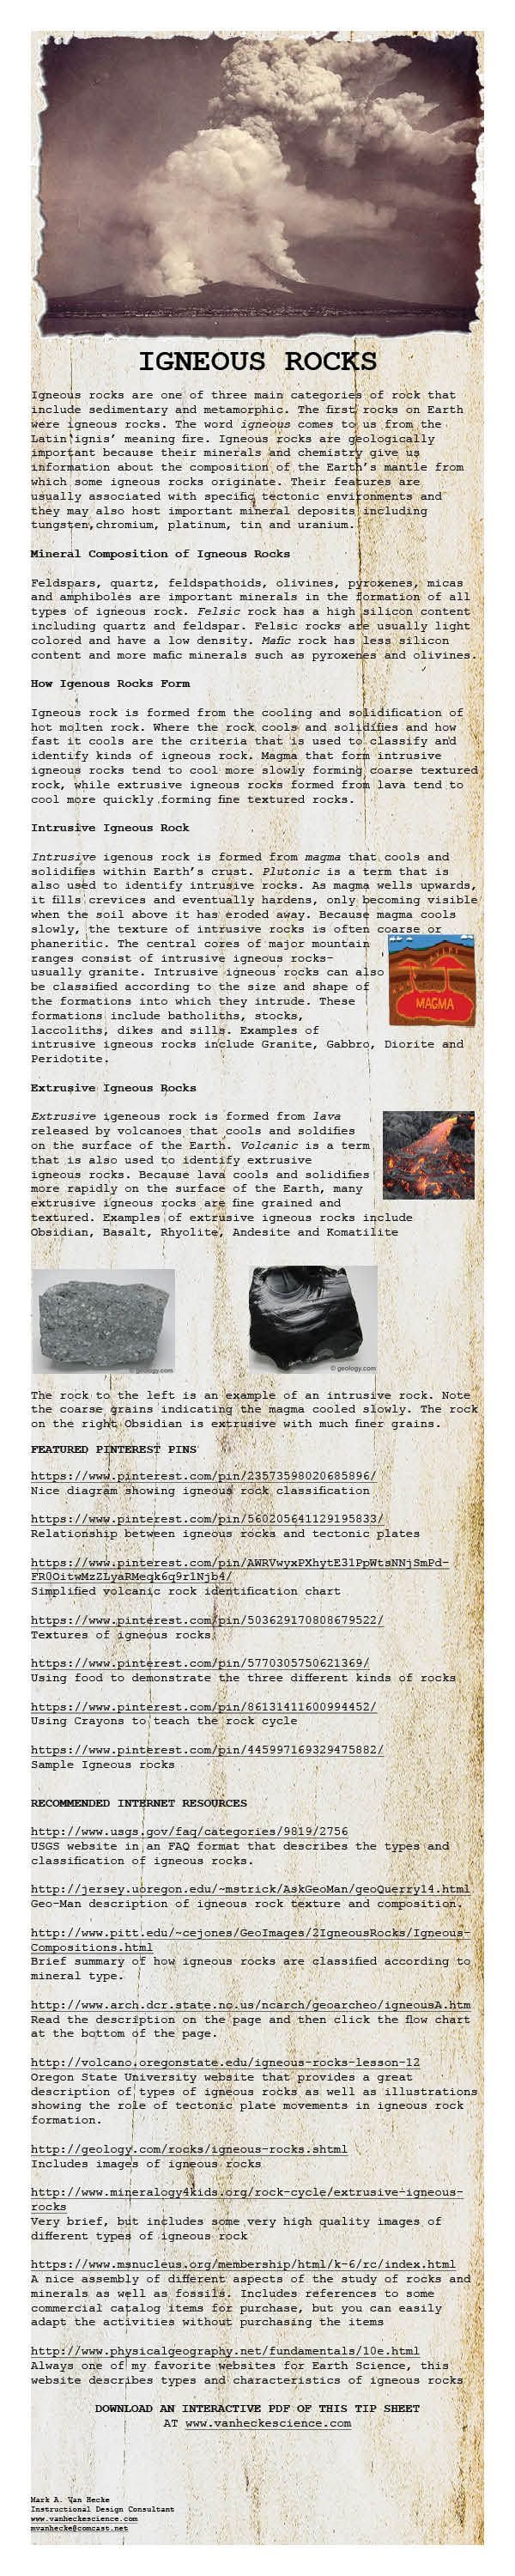 worksheet Igneous Rocks Worksheet 26 best igneous rocks images on pinterest earth science geography use this tip sheet to begin your study of it includes a brief